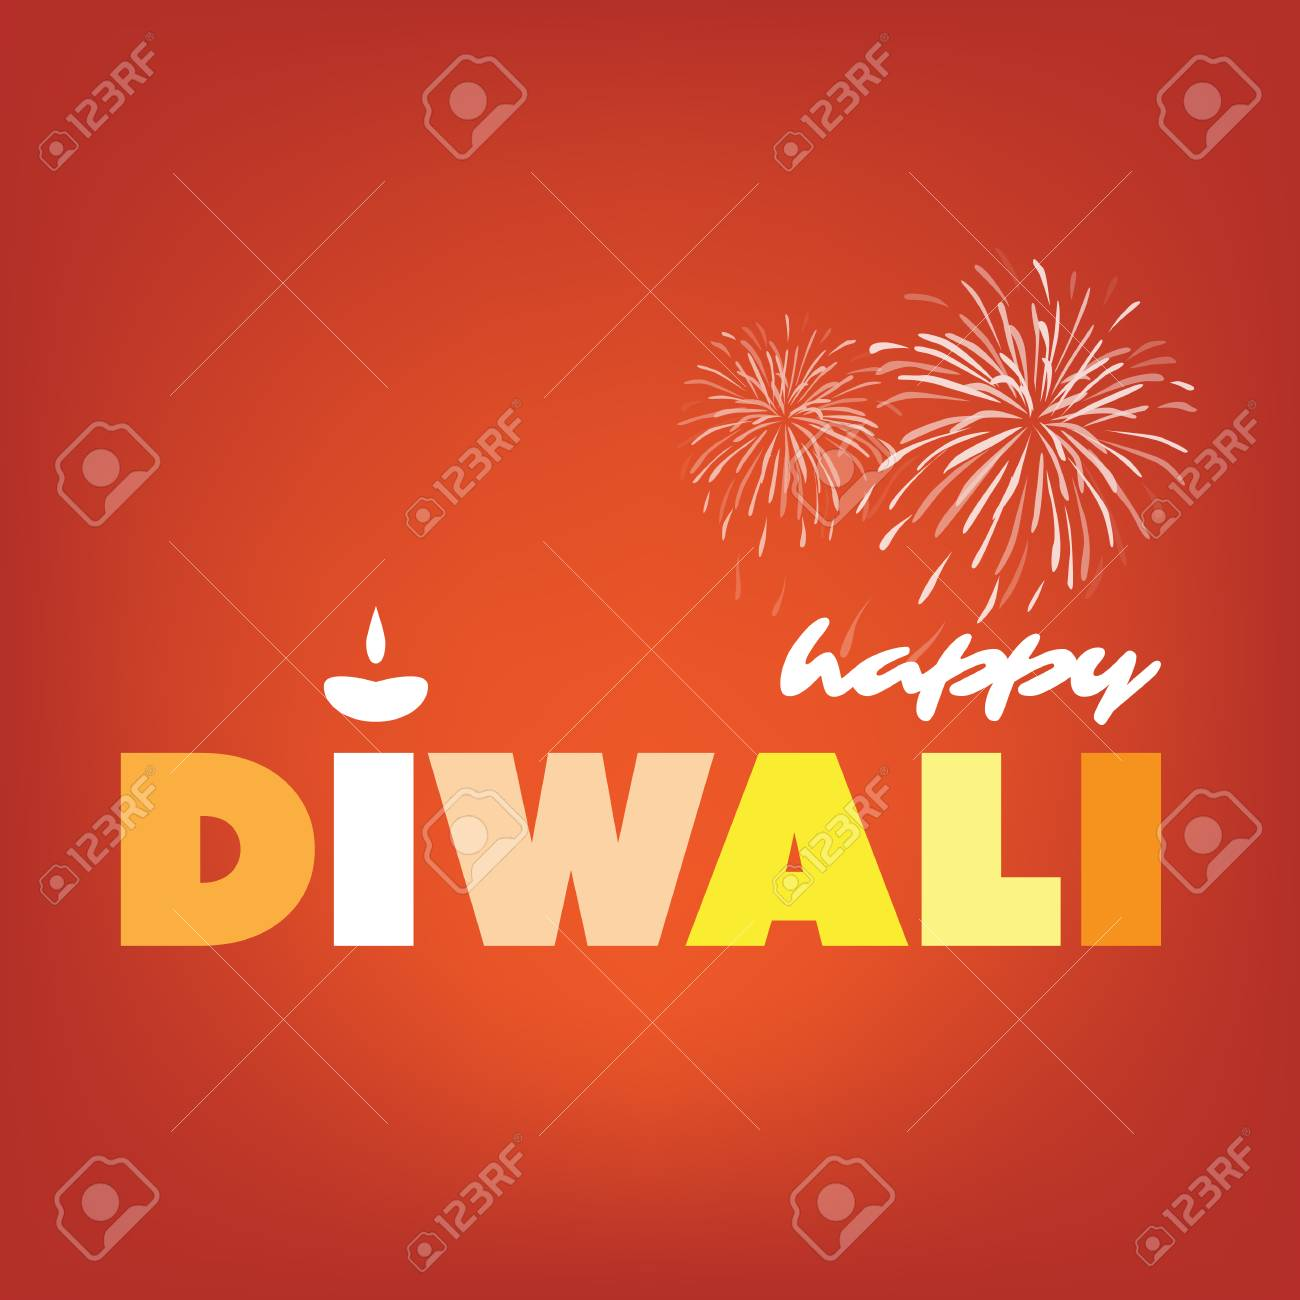 happy diwali card abstract greeting card or background creative design template stock vector